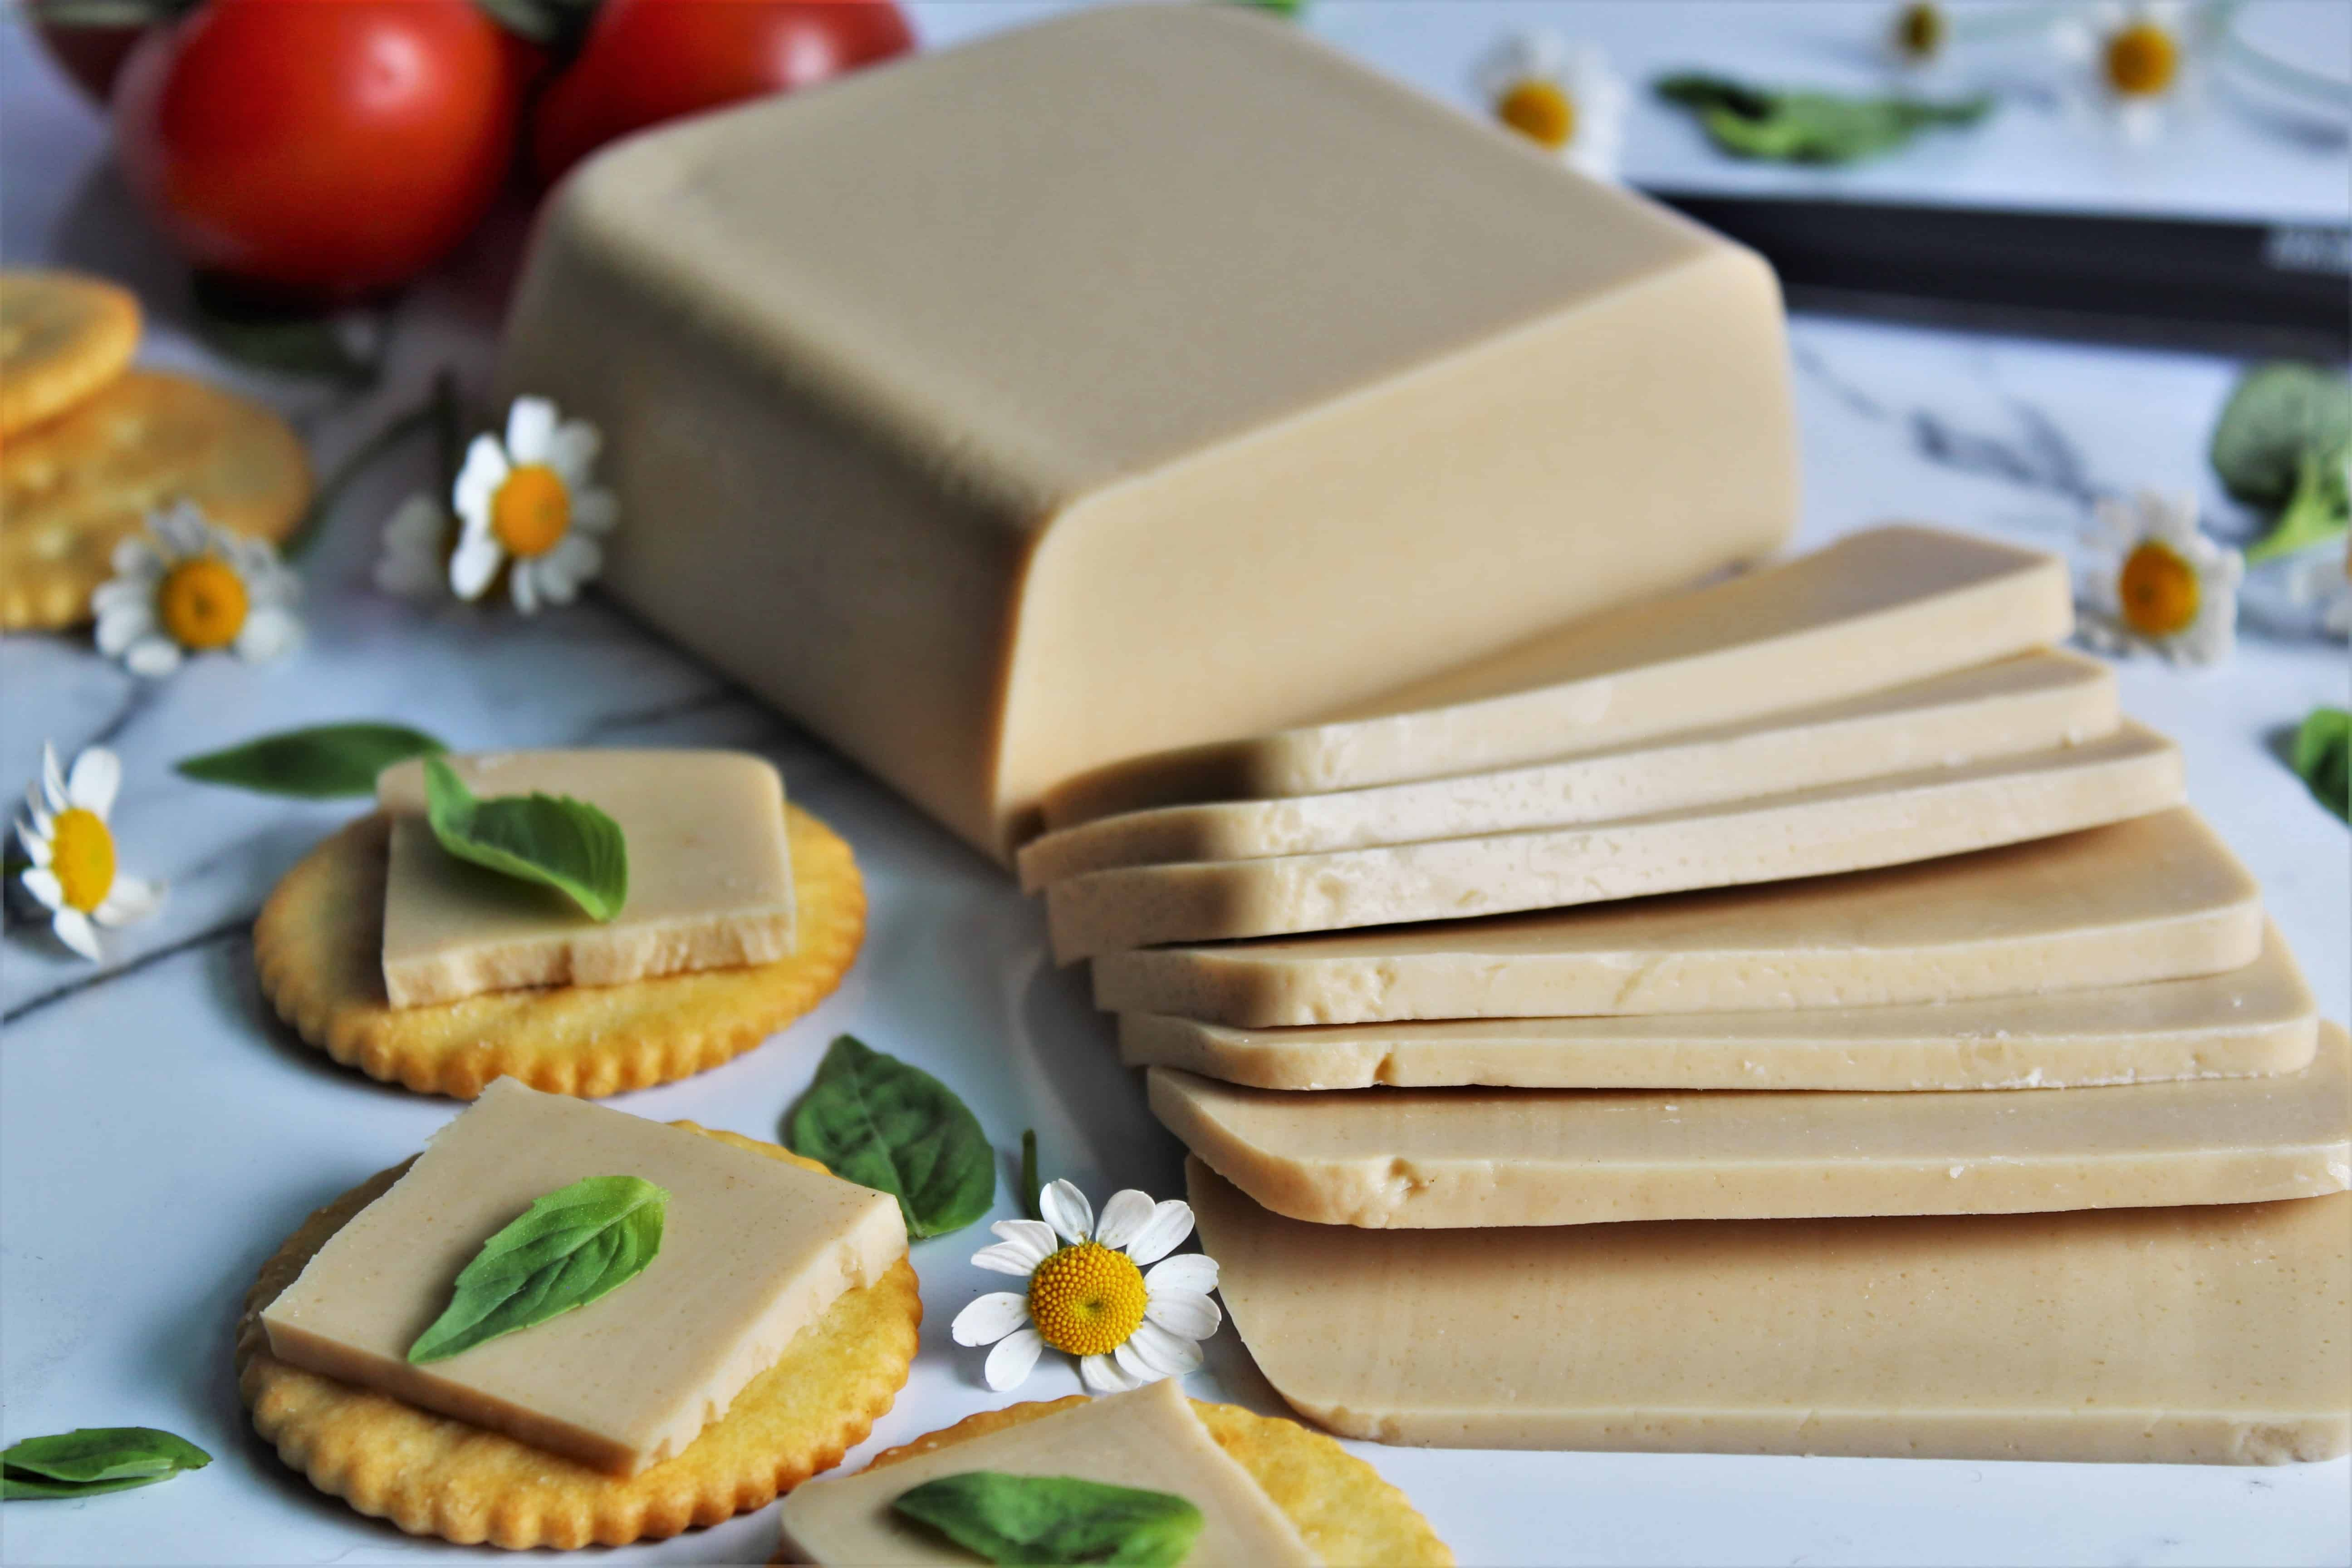 Vegan Smoked Gouda Made With Coconut Milk May Be The All Time Best